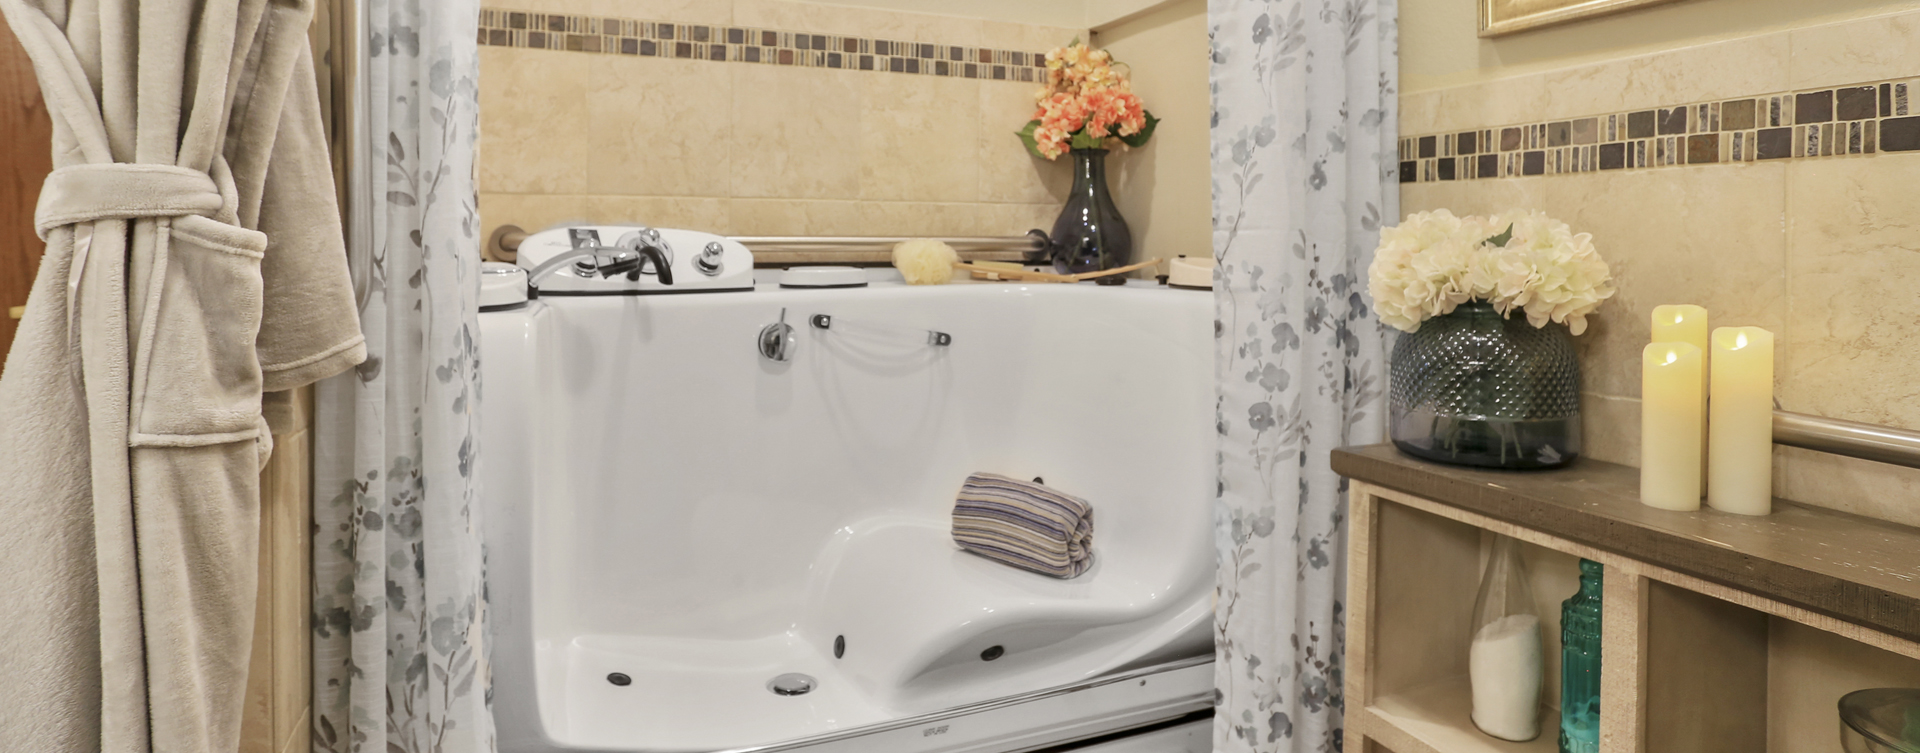 Hydrotherapy eases achy joints in our whirlpool at Bickford of Champaign